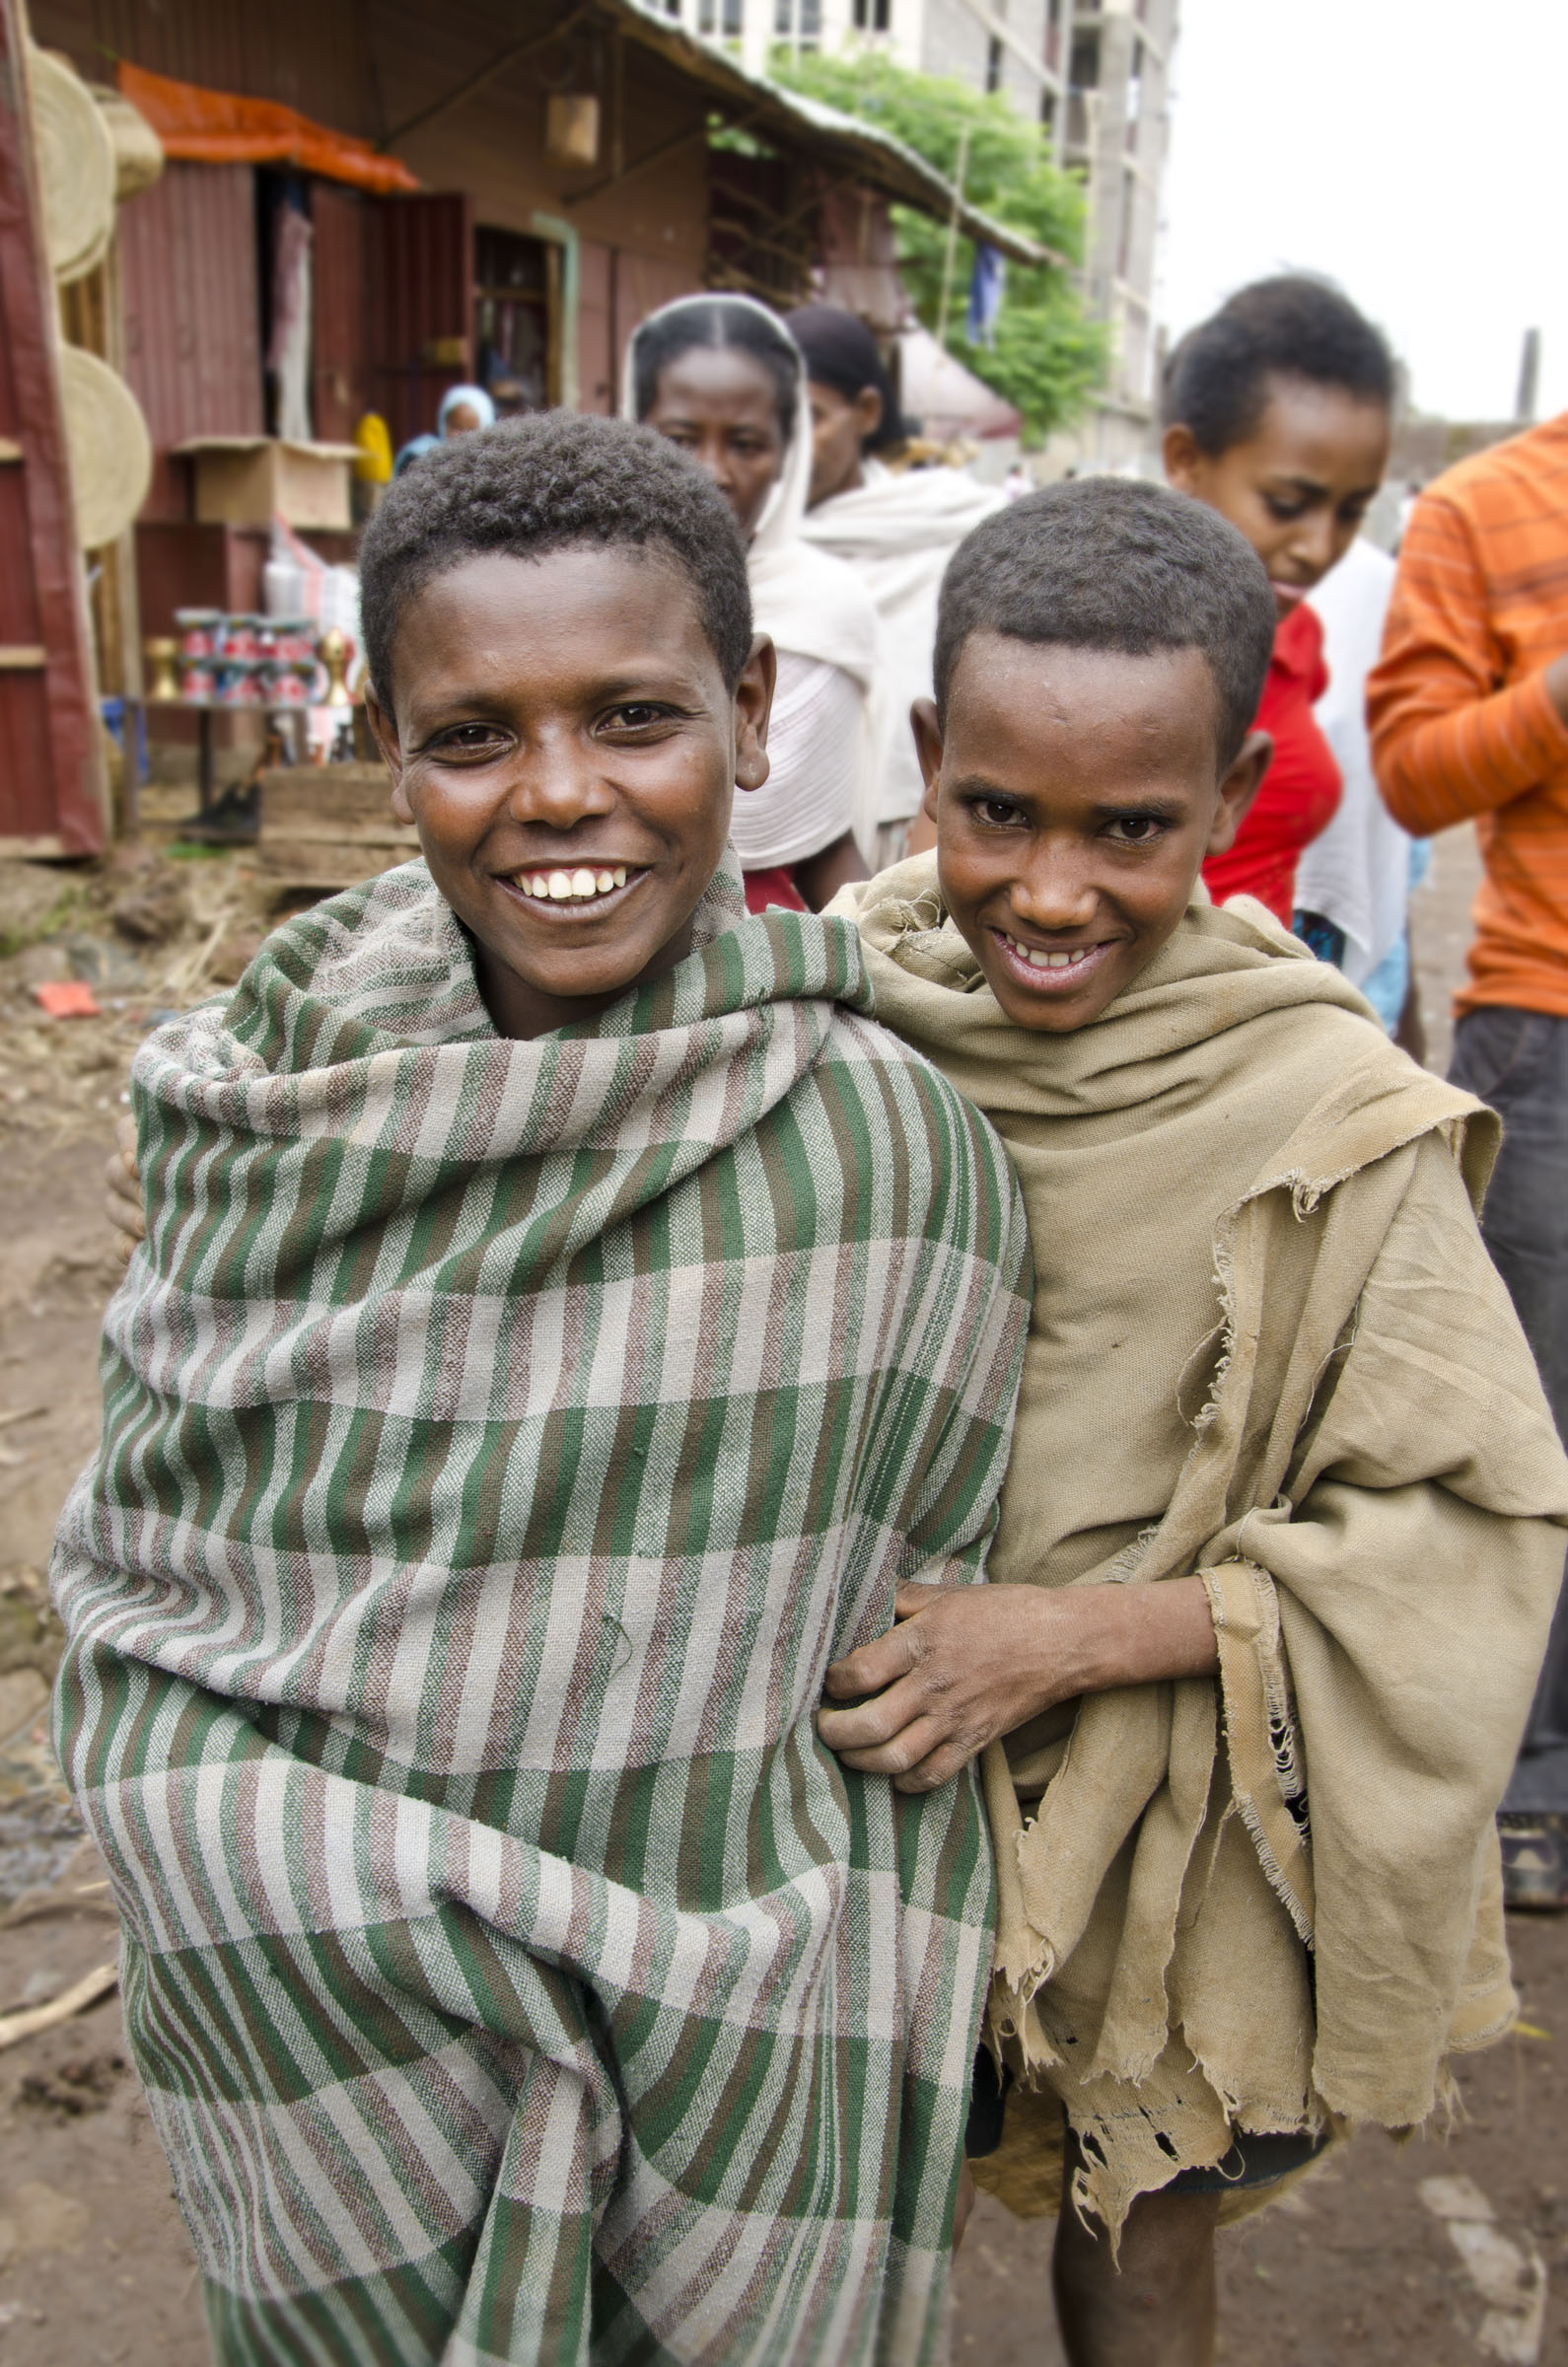 Teenage Ethiopian boys in traditional shawls